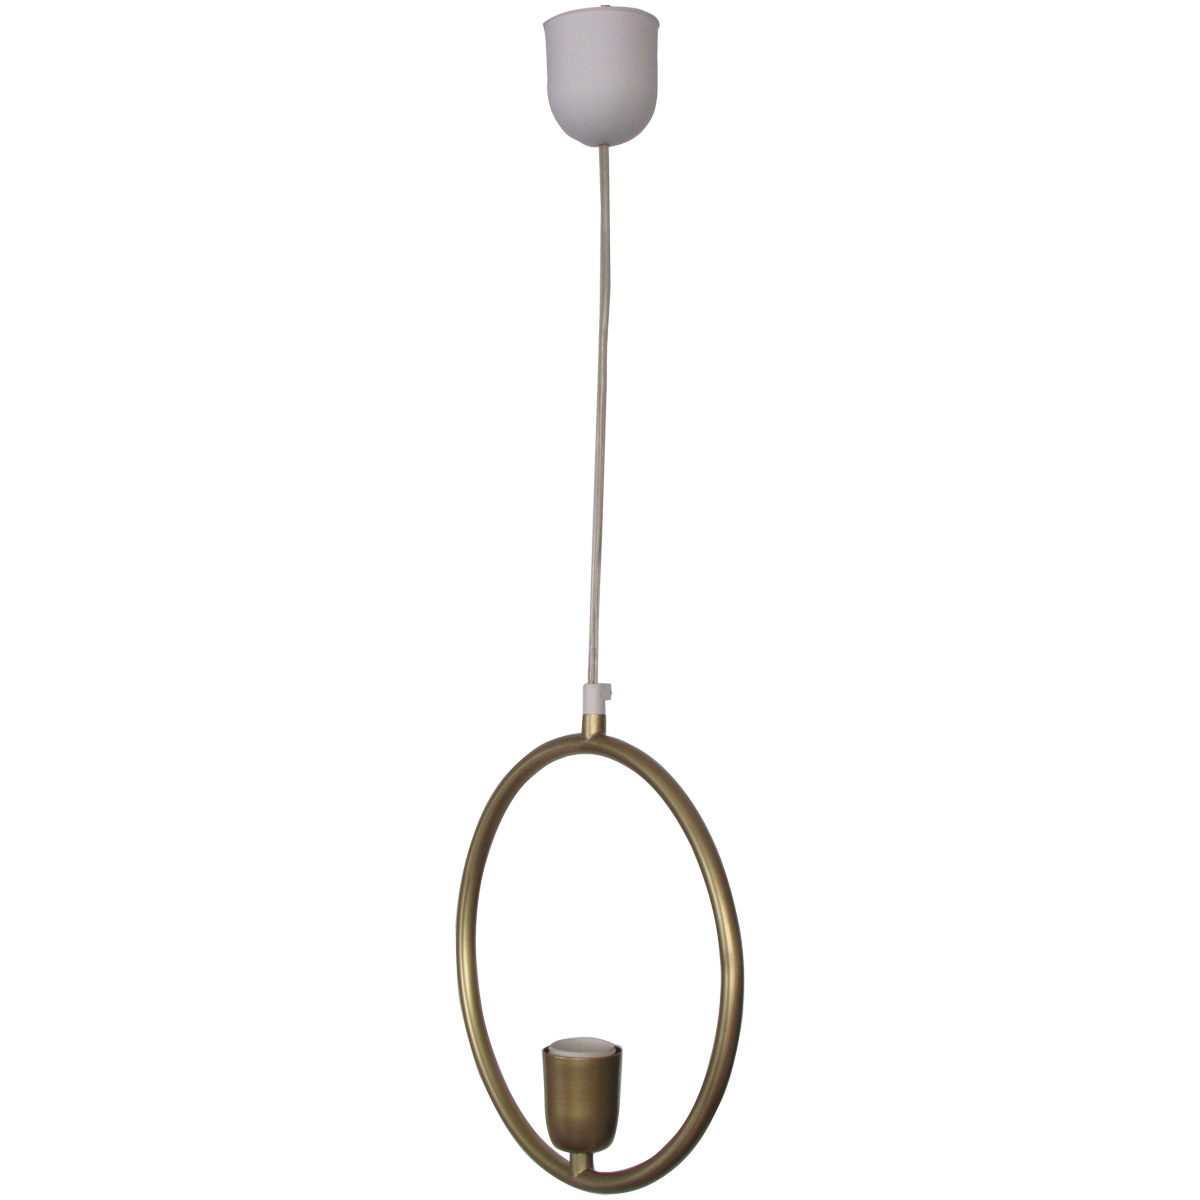 Suspension Ronde Decoration Objets Decoration Suspension Ronde Circle Le